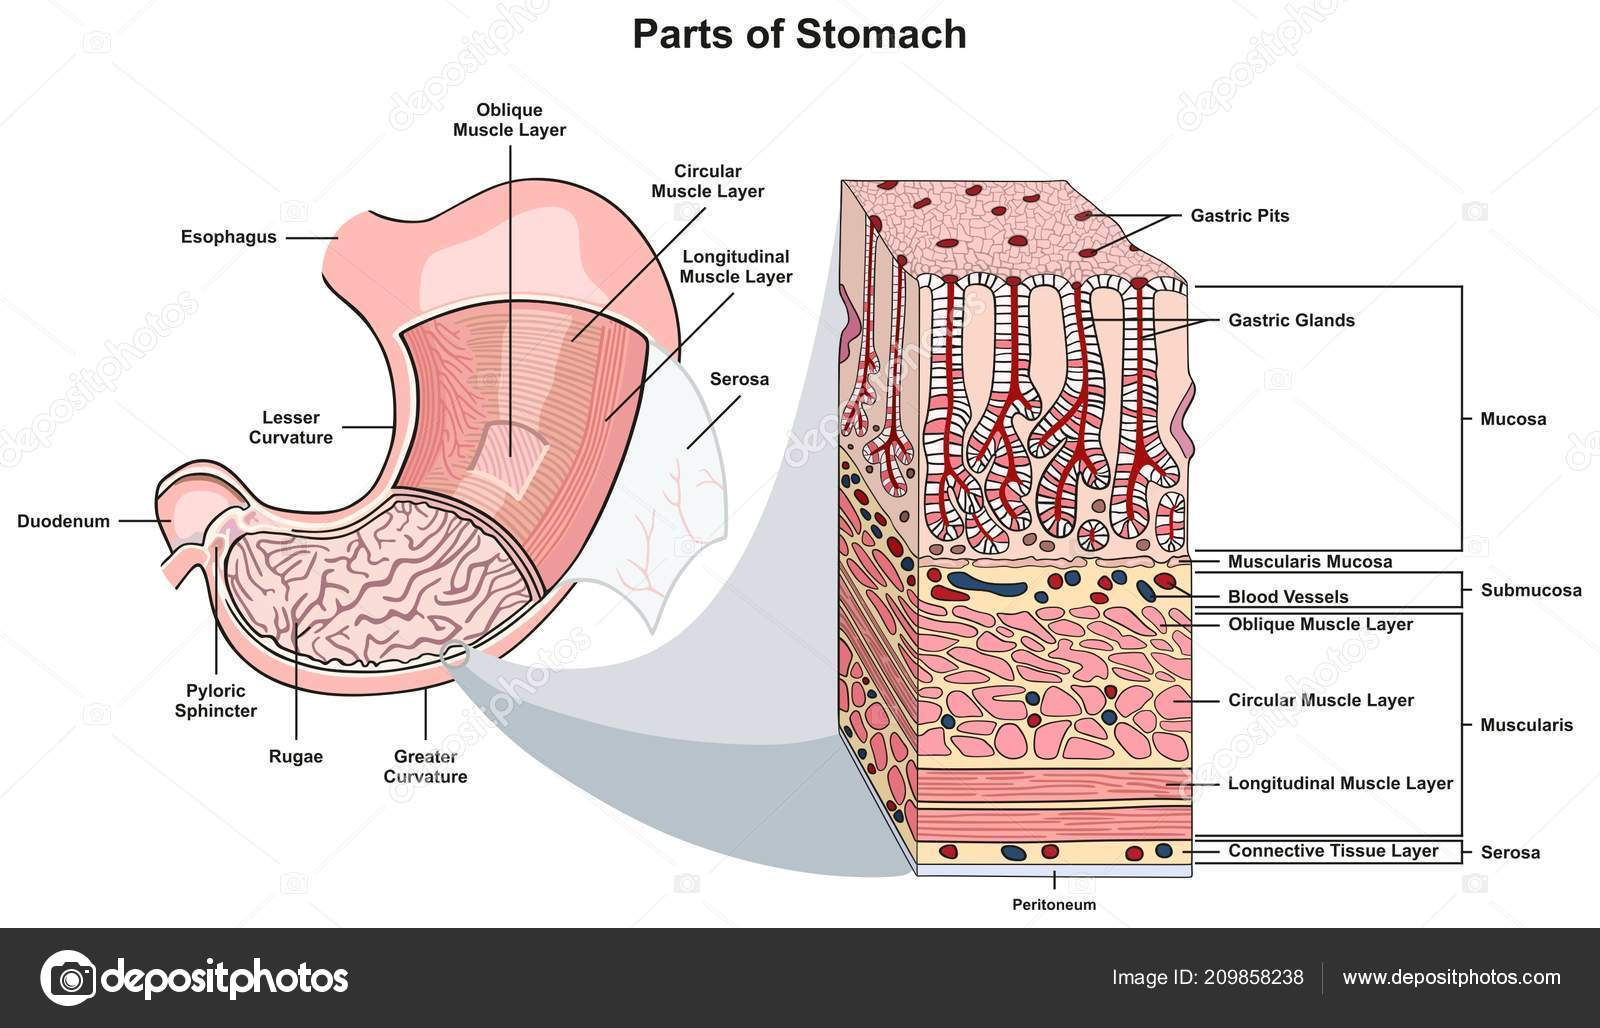 hight resolution of parts stomach infographic diagram including structure cross section diagram parts esophagus